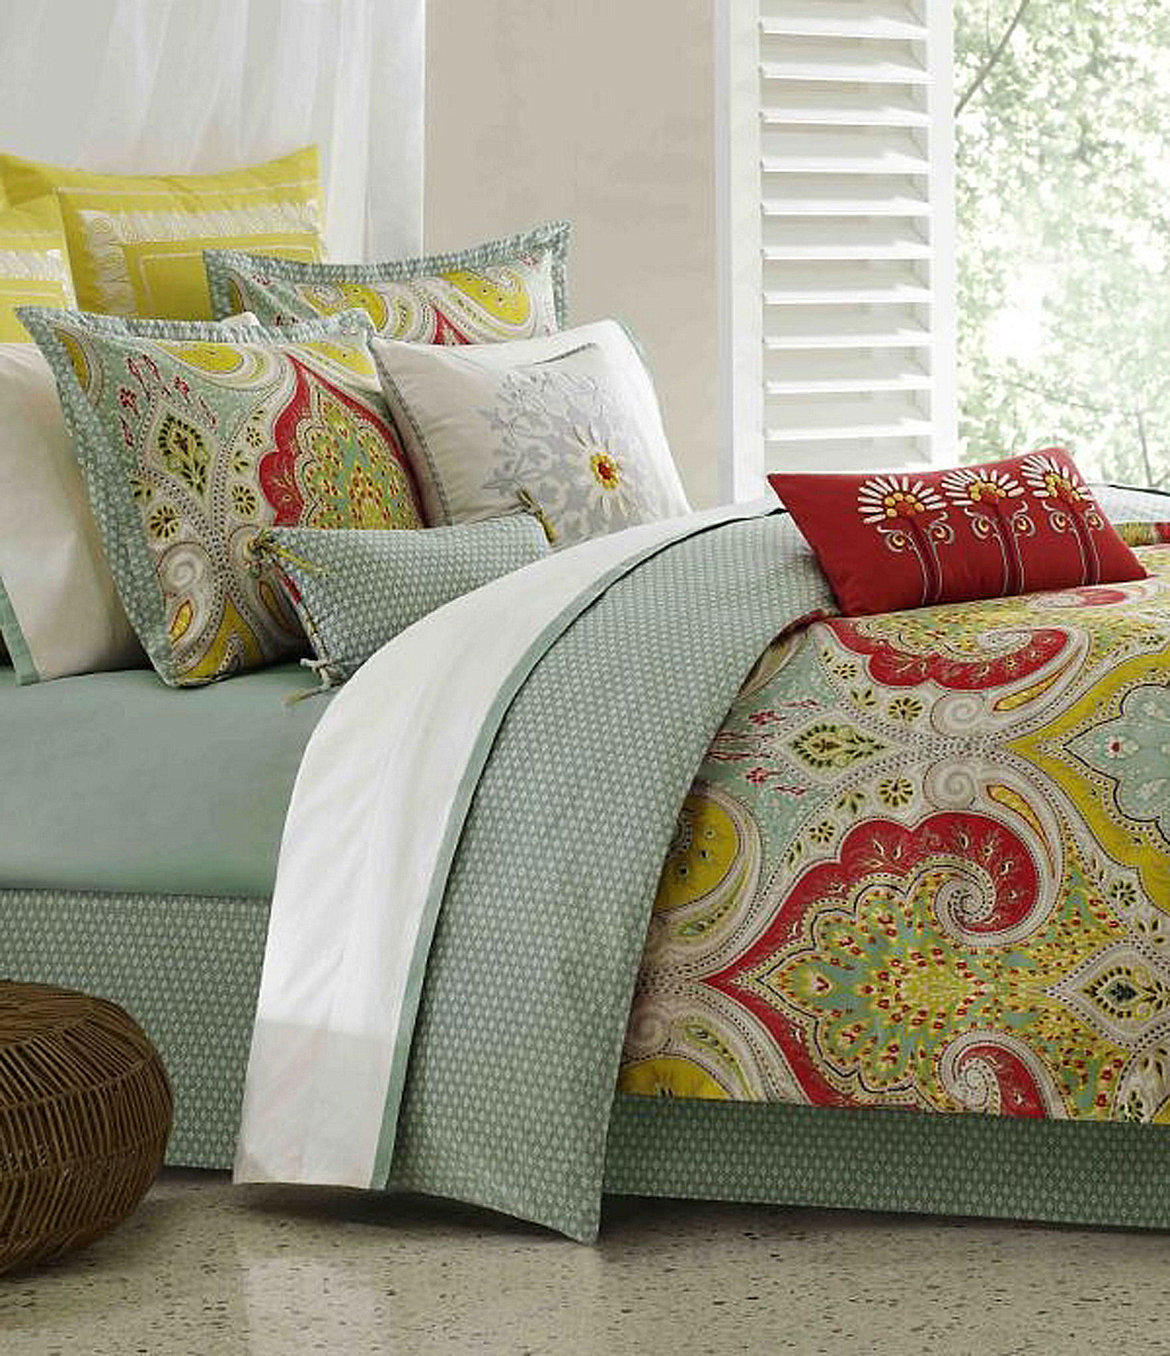 Echo Quot Jaipur Quot Bedding Collection From Dillard S